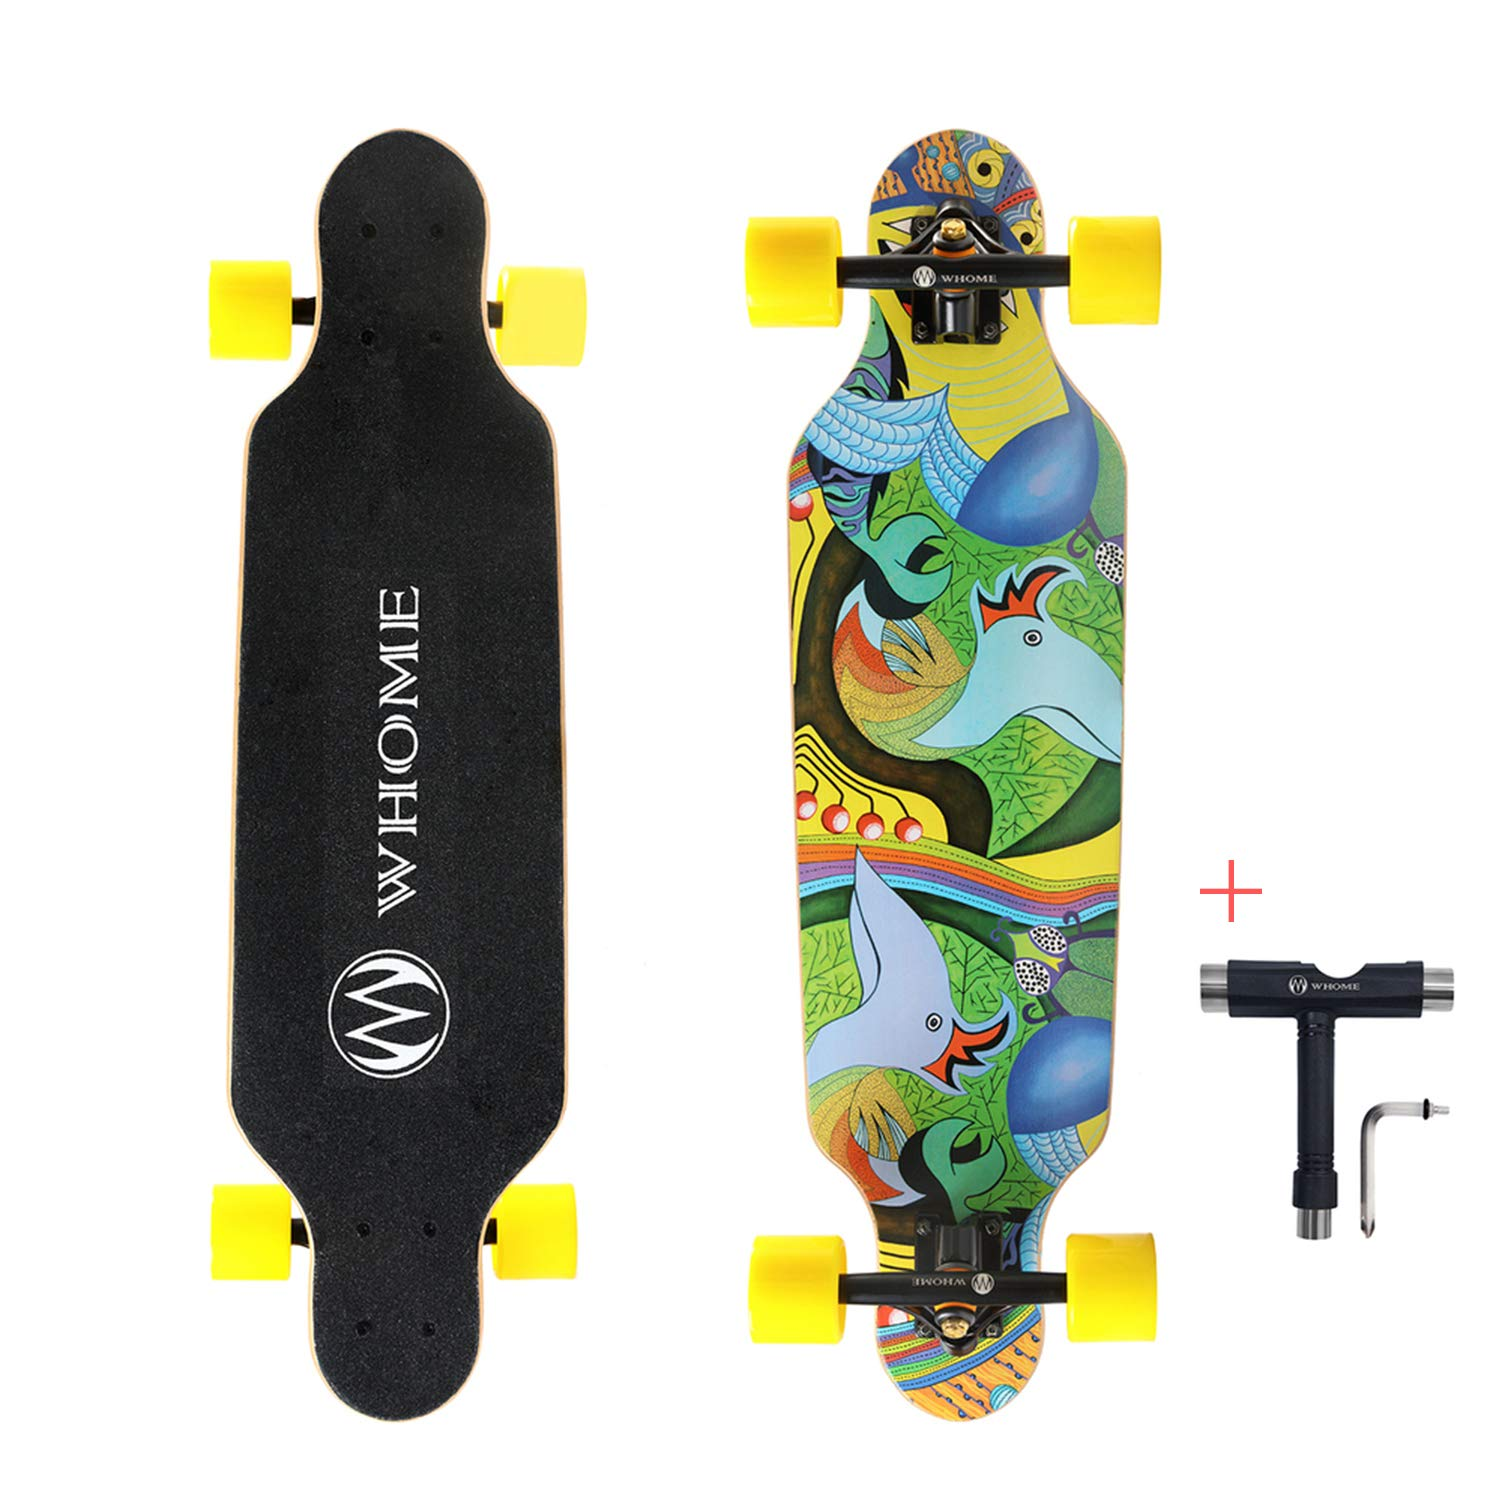 WHOME Skateboard Complete for Adults and Beginners - 31 Inch Small Longboard Skateboard Complete Carving Cruiser T-Tool Included by WHOME